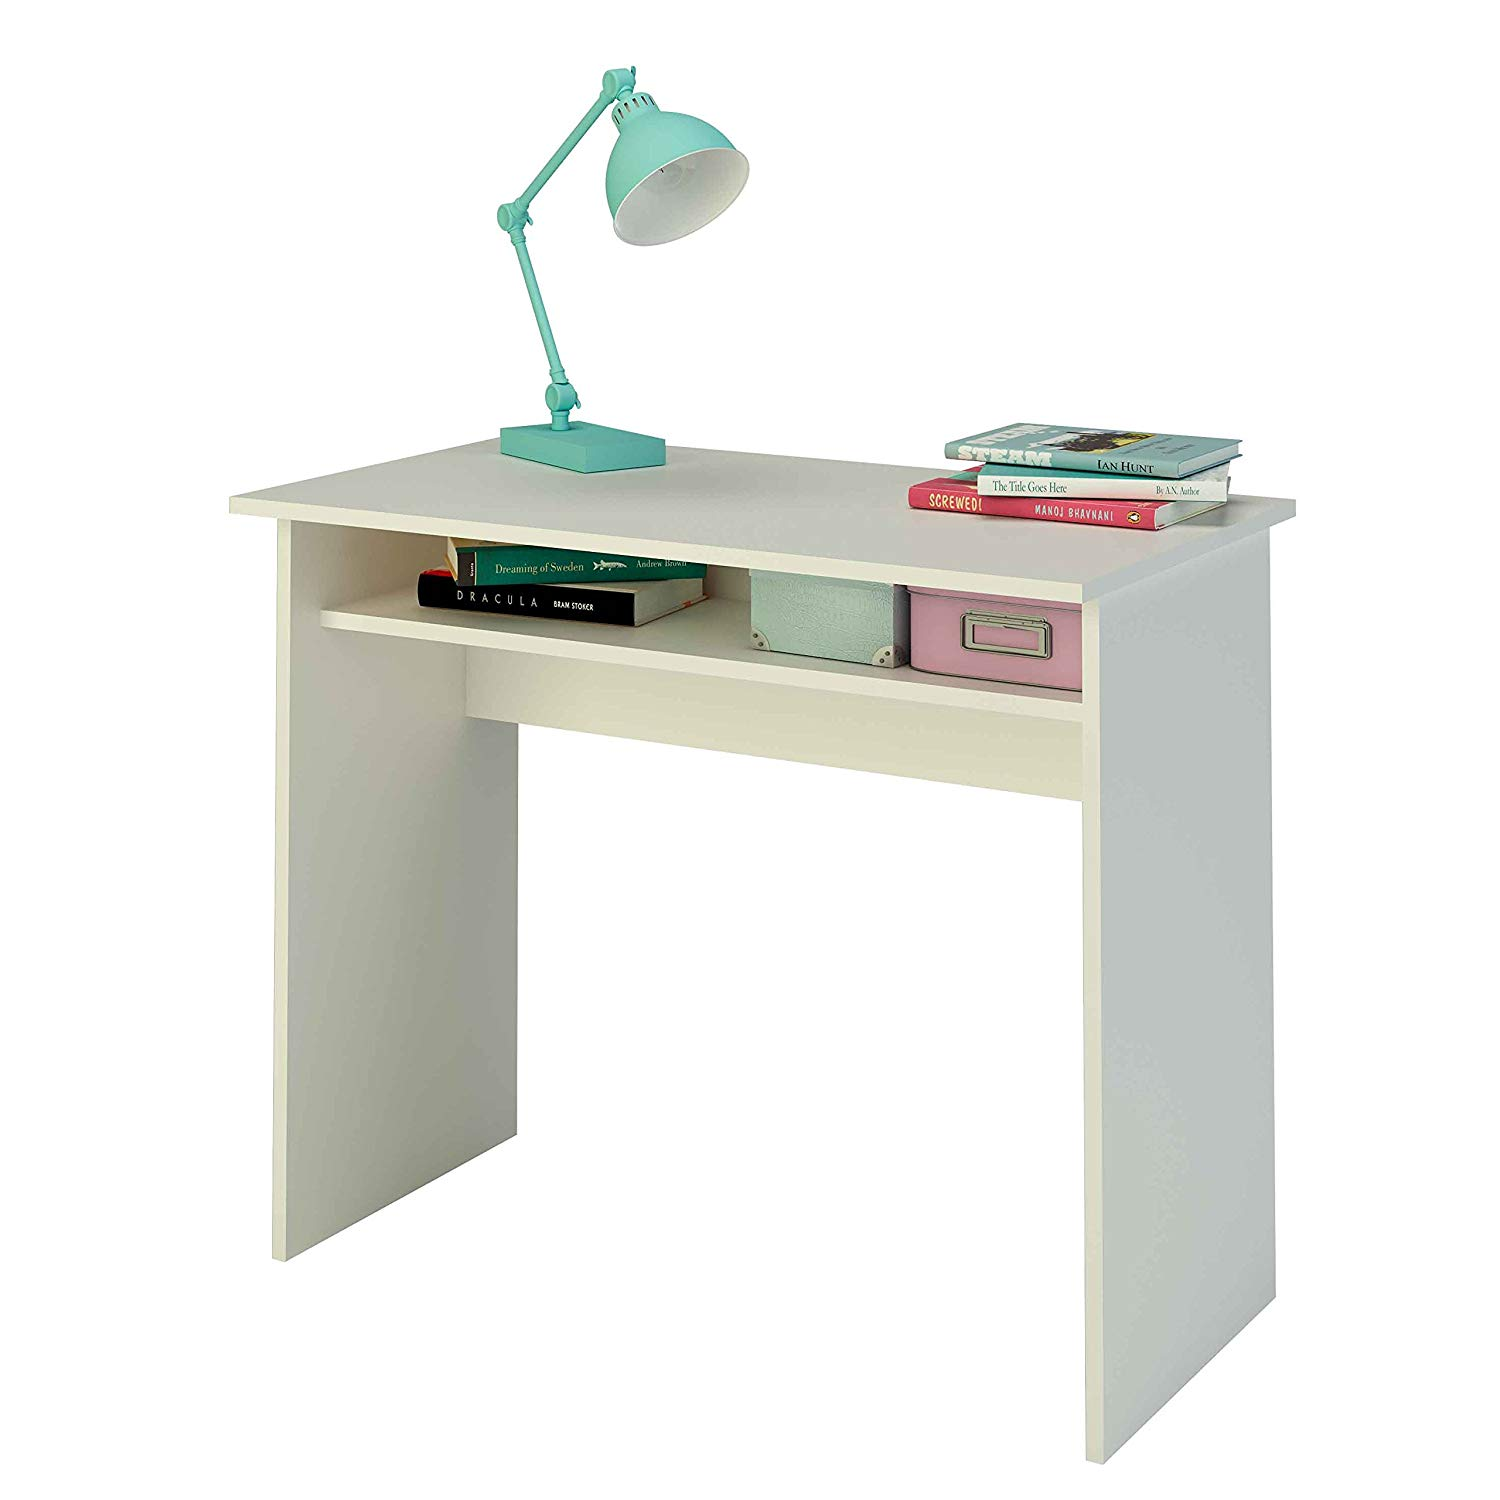 Lot 15 - Samblo White desk with shelf, 90 cm wide Flat Packed RRP £99.99